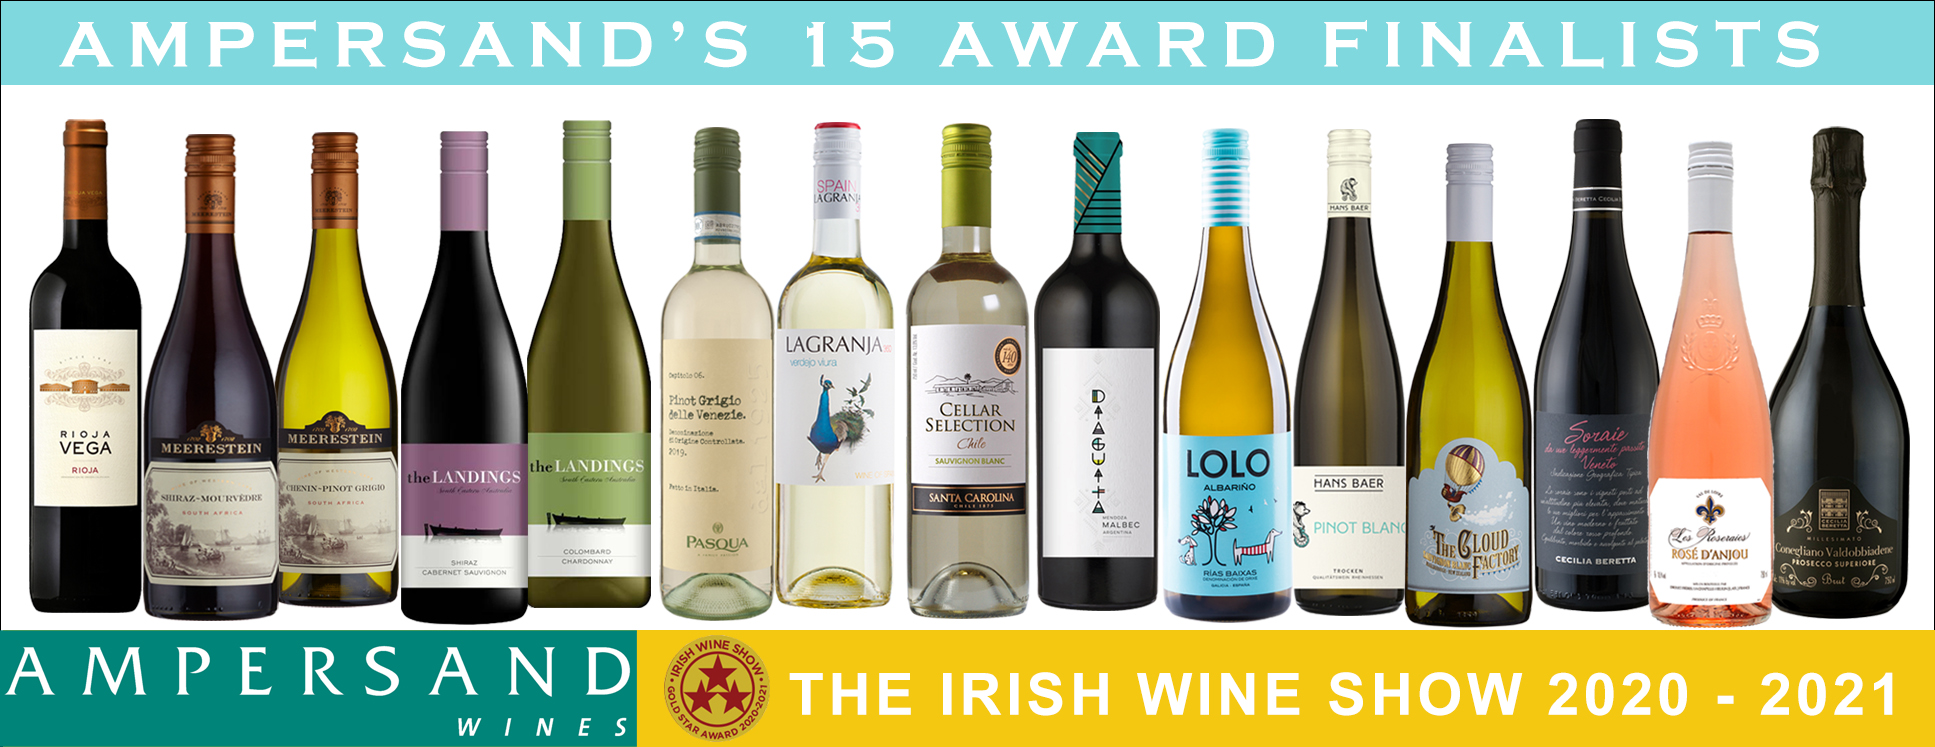 Ampersand Wines: 15 Finalist Wines in the upcoming Irish Wine Show Awards